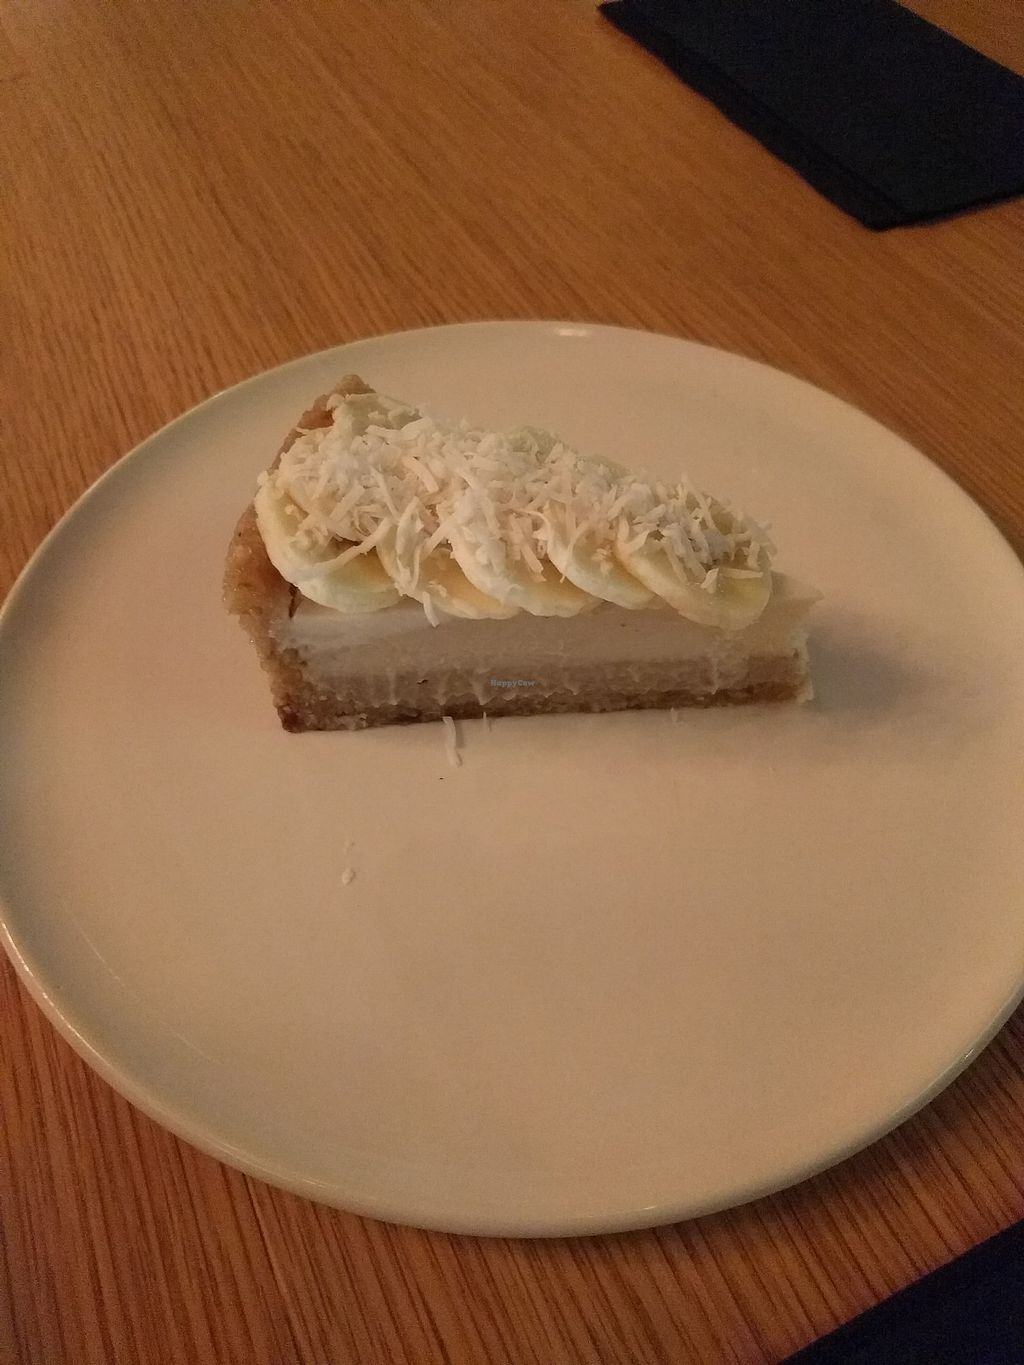 """Photo of Alibi  by <a href=""""/members/profile/Cycliz"""">Cycliz</a> <br/>Coconut cream pie with a macadamia crust and bananas <br/> April 8, 2018  - <a href='/contact/abuse/image/115266/382236'>Report</a>"""